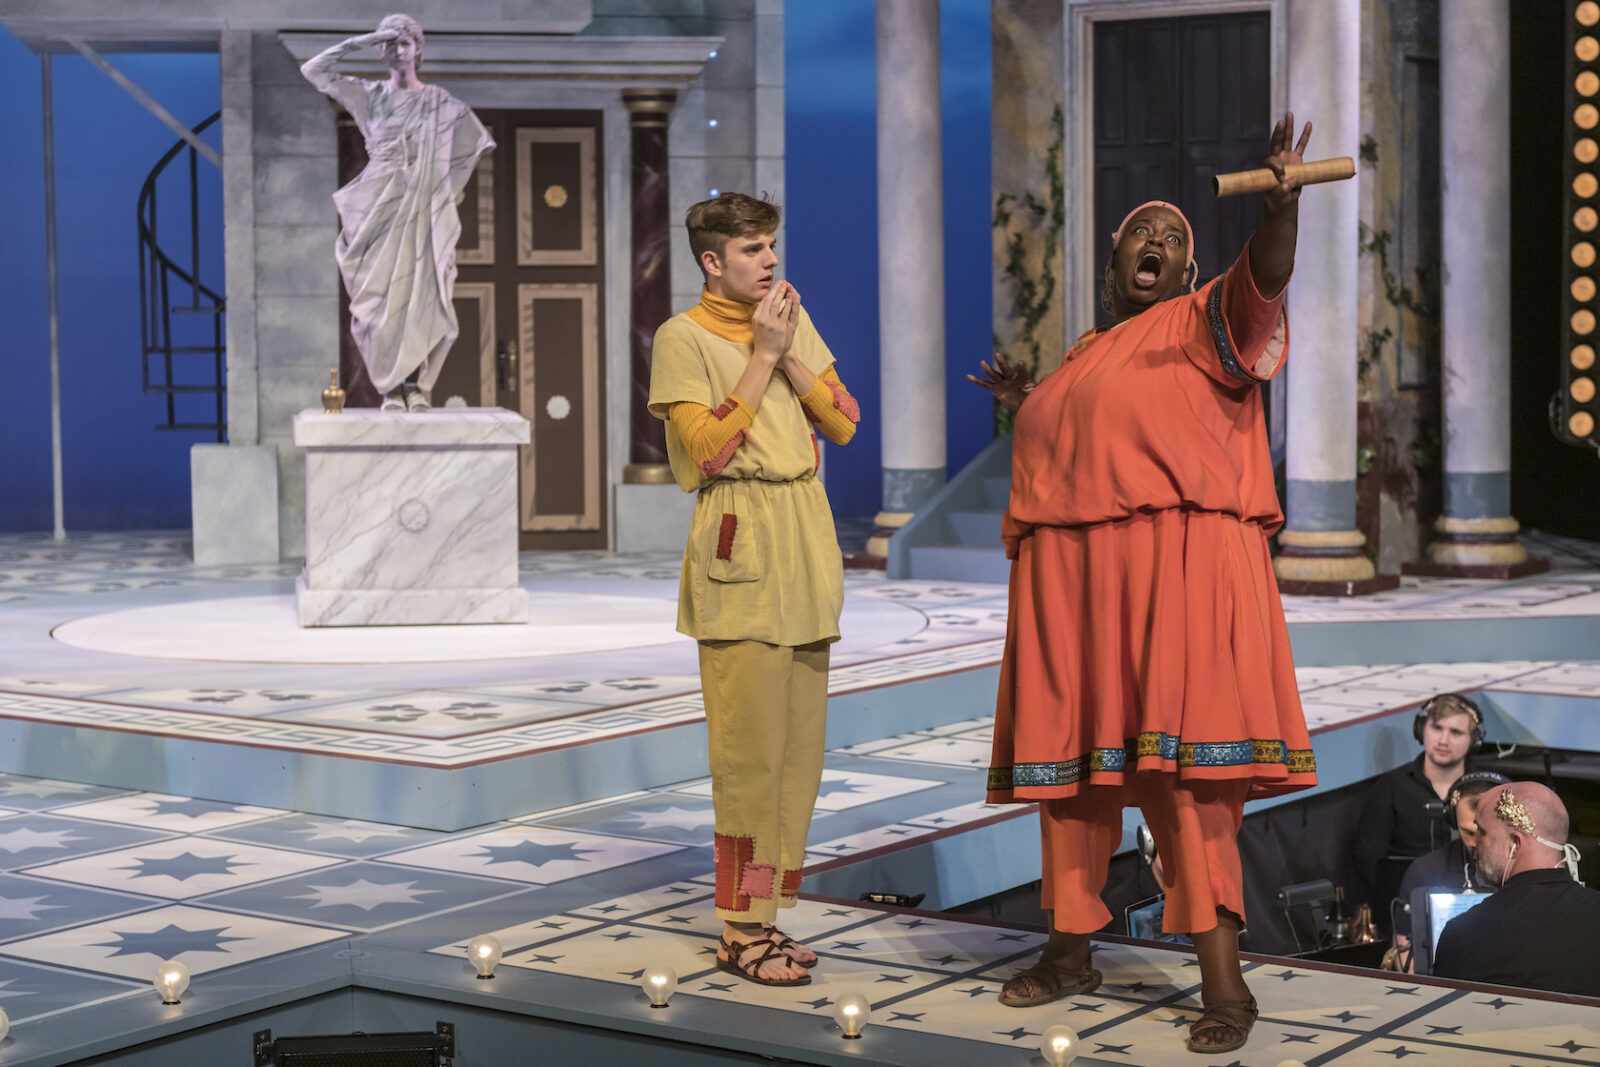 Two actors engage onstage in Roman costumes. One gestures toward the audience.